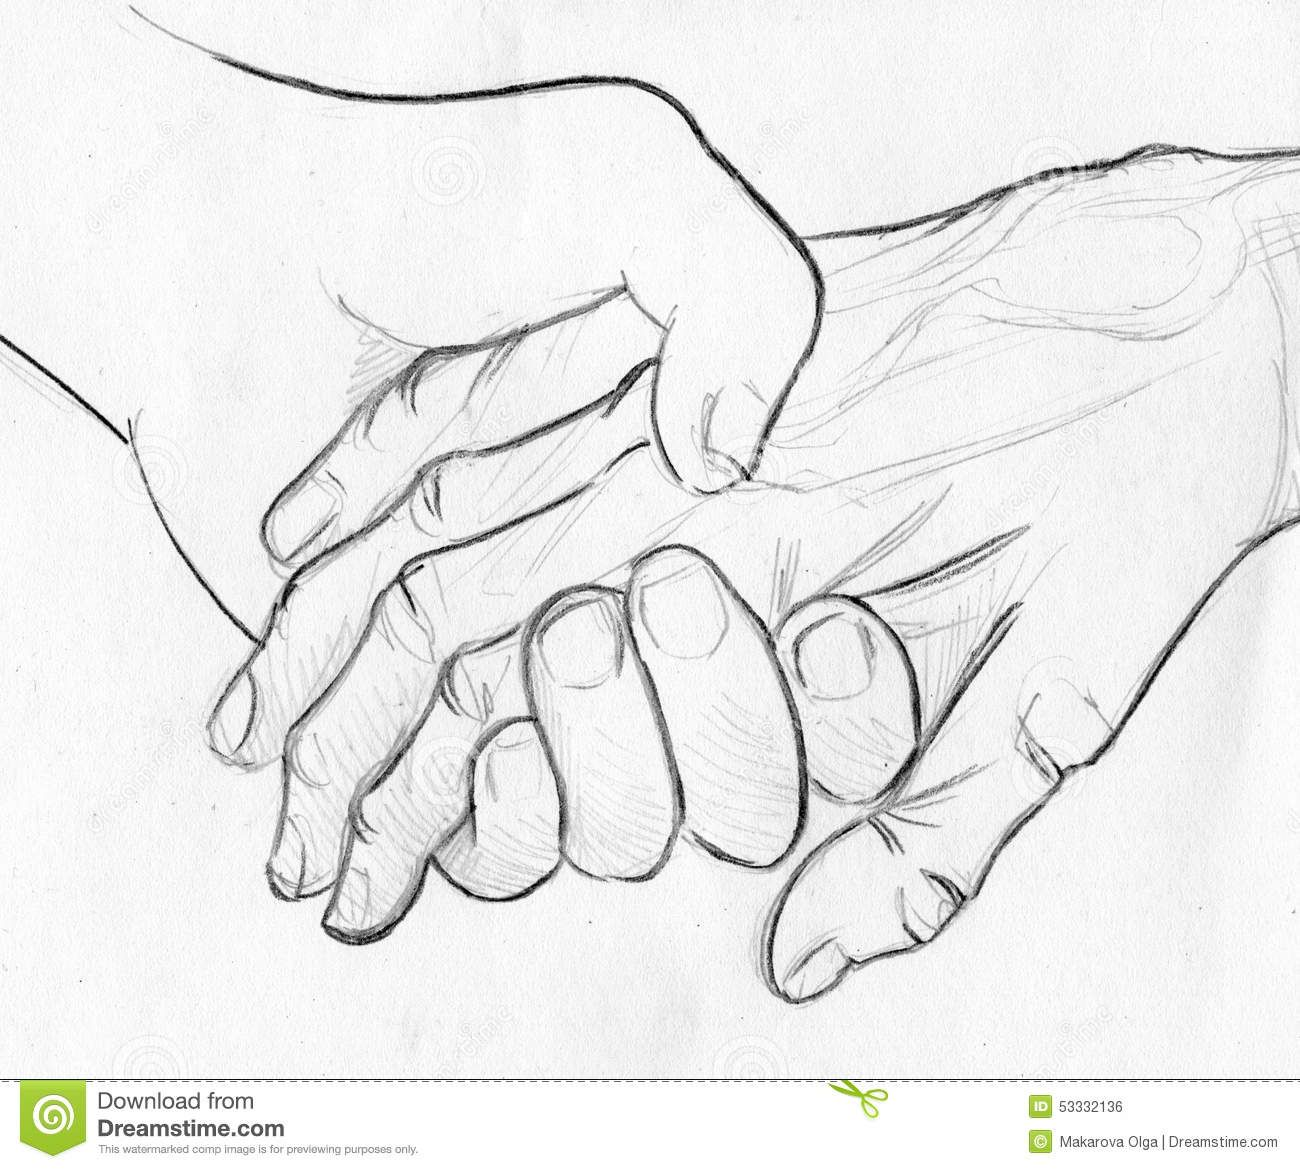 1300x1169 Holding Elderly Hand Pencil Sketch Drawn Two Hands One Young One